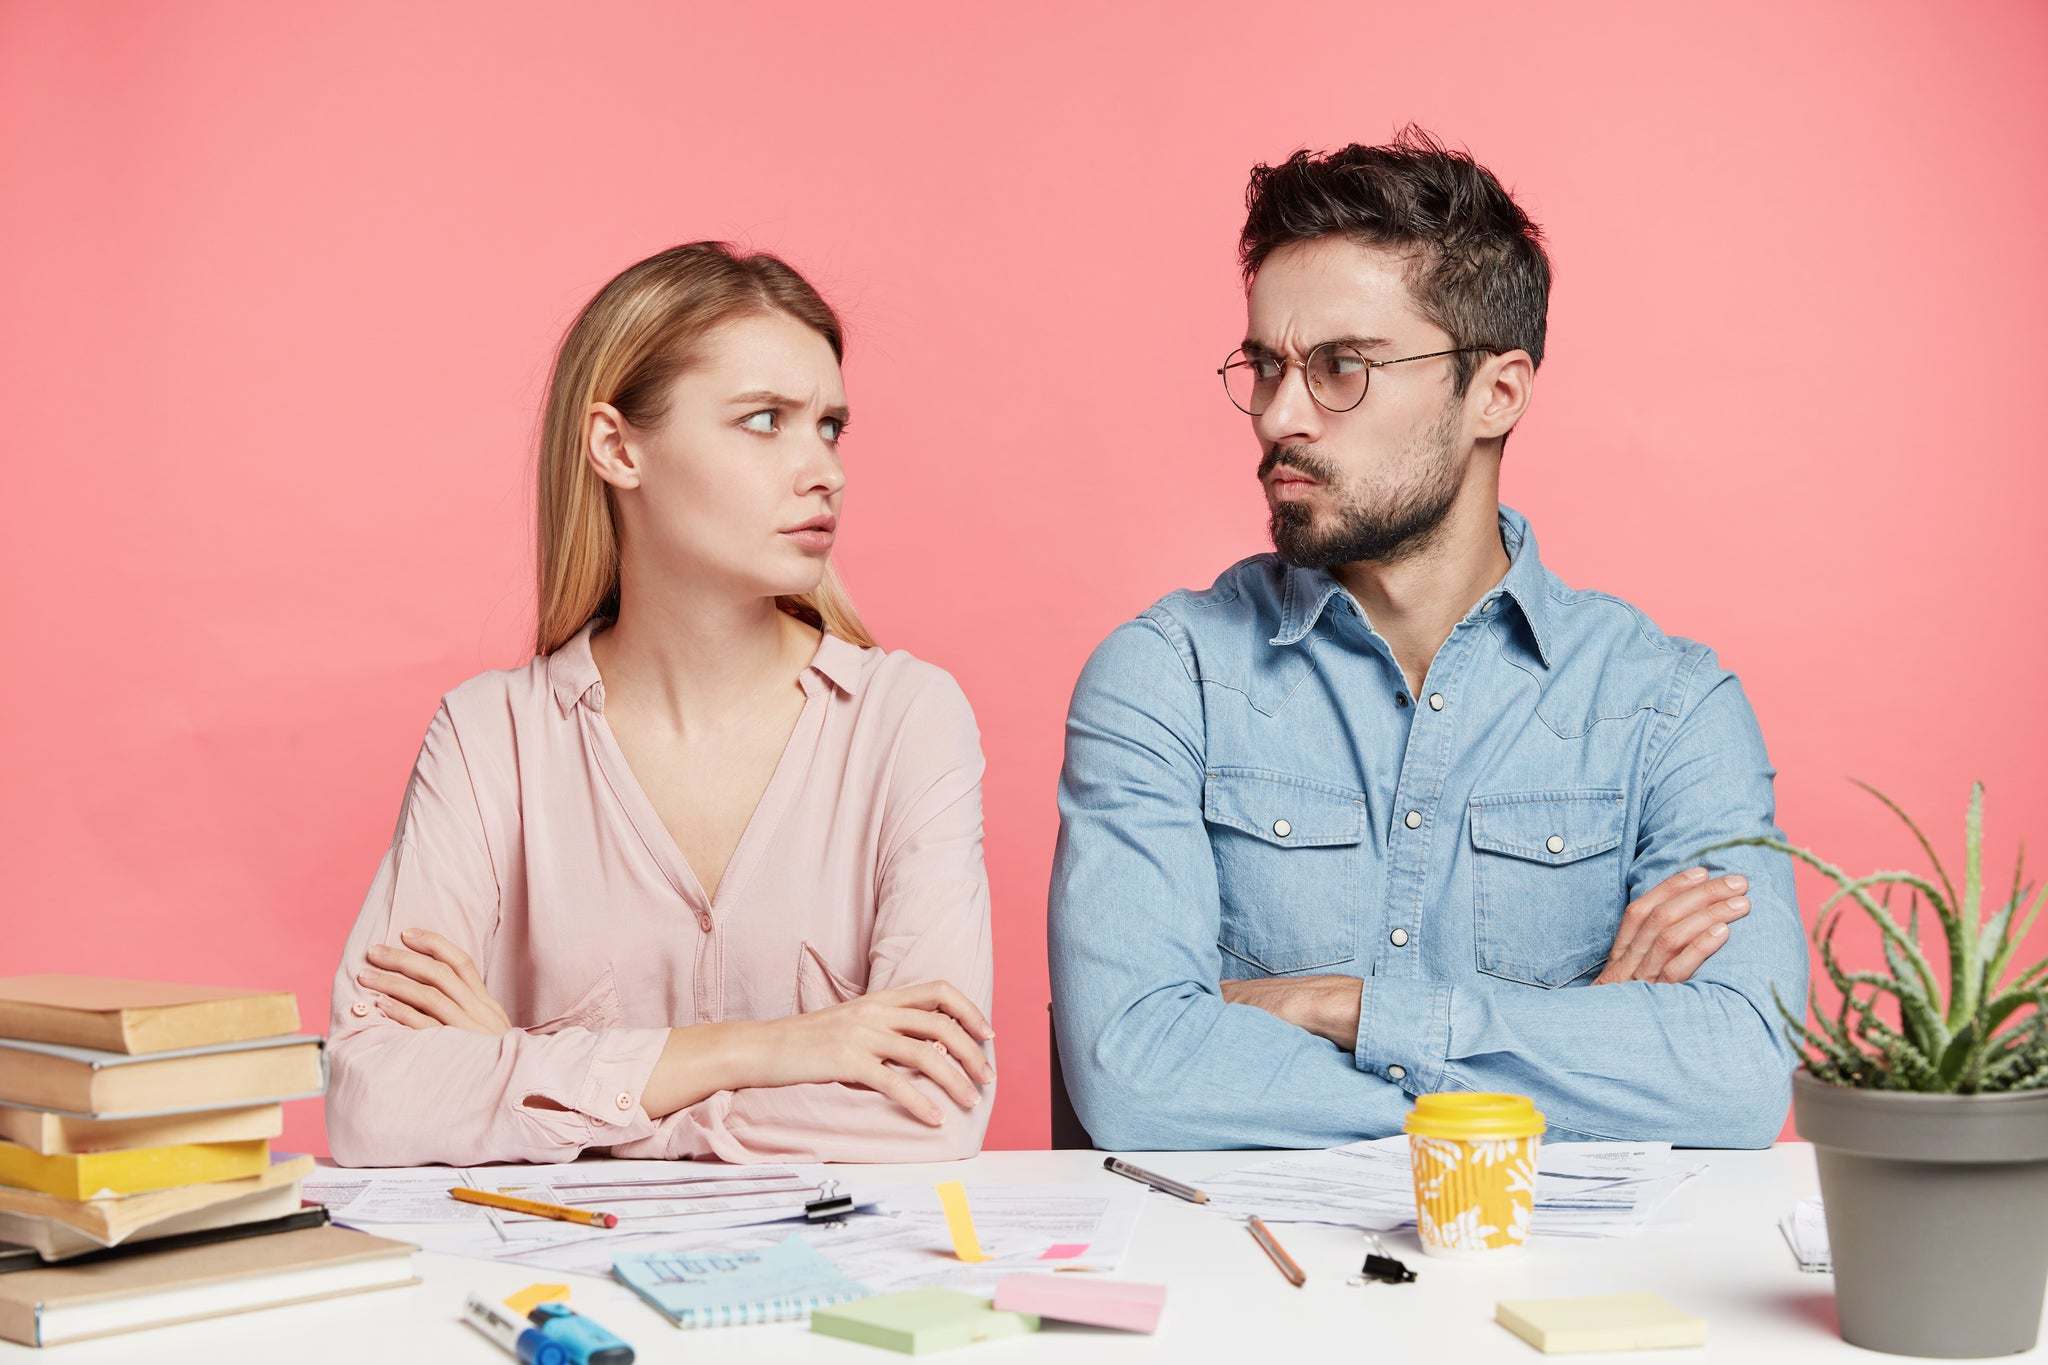 5 Tips to Easily Resolve Disagreements